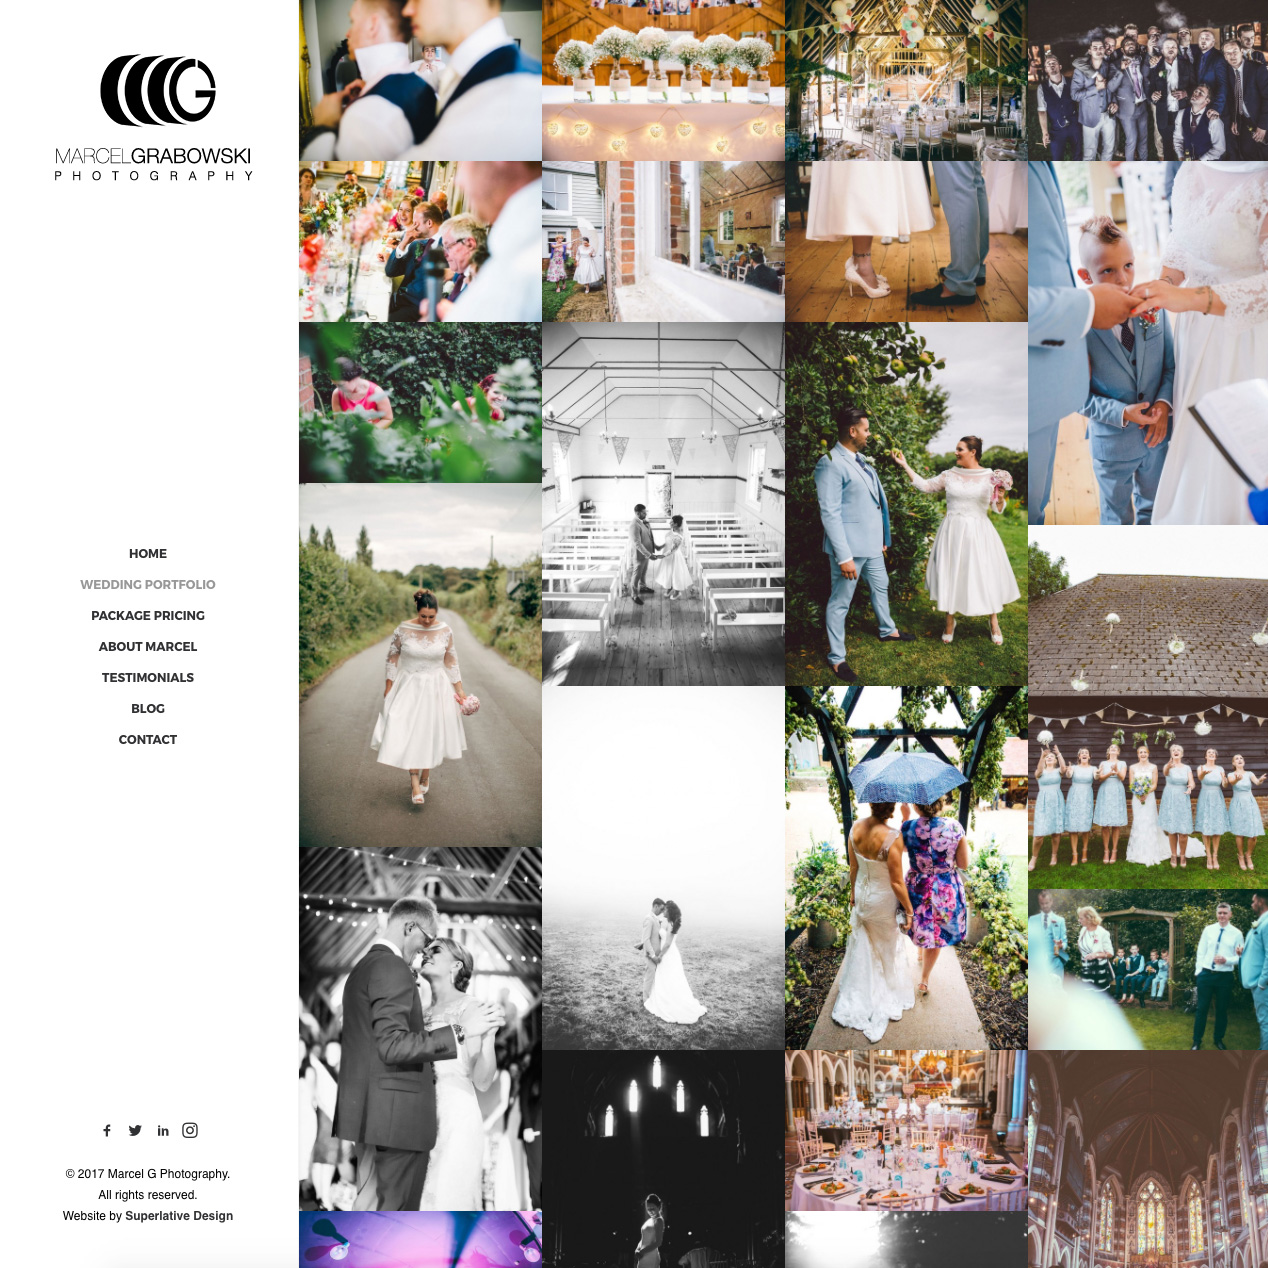 Wedding Photography Portfolio Website